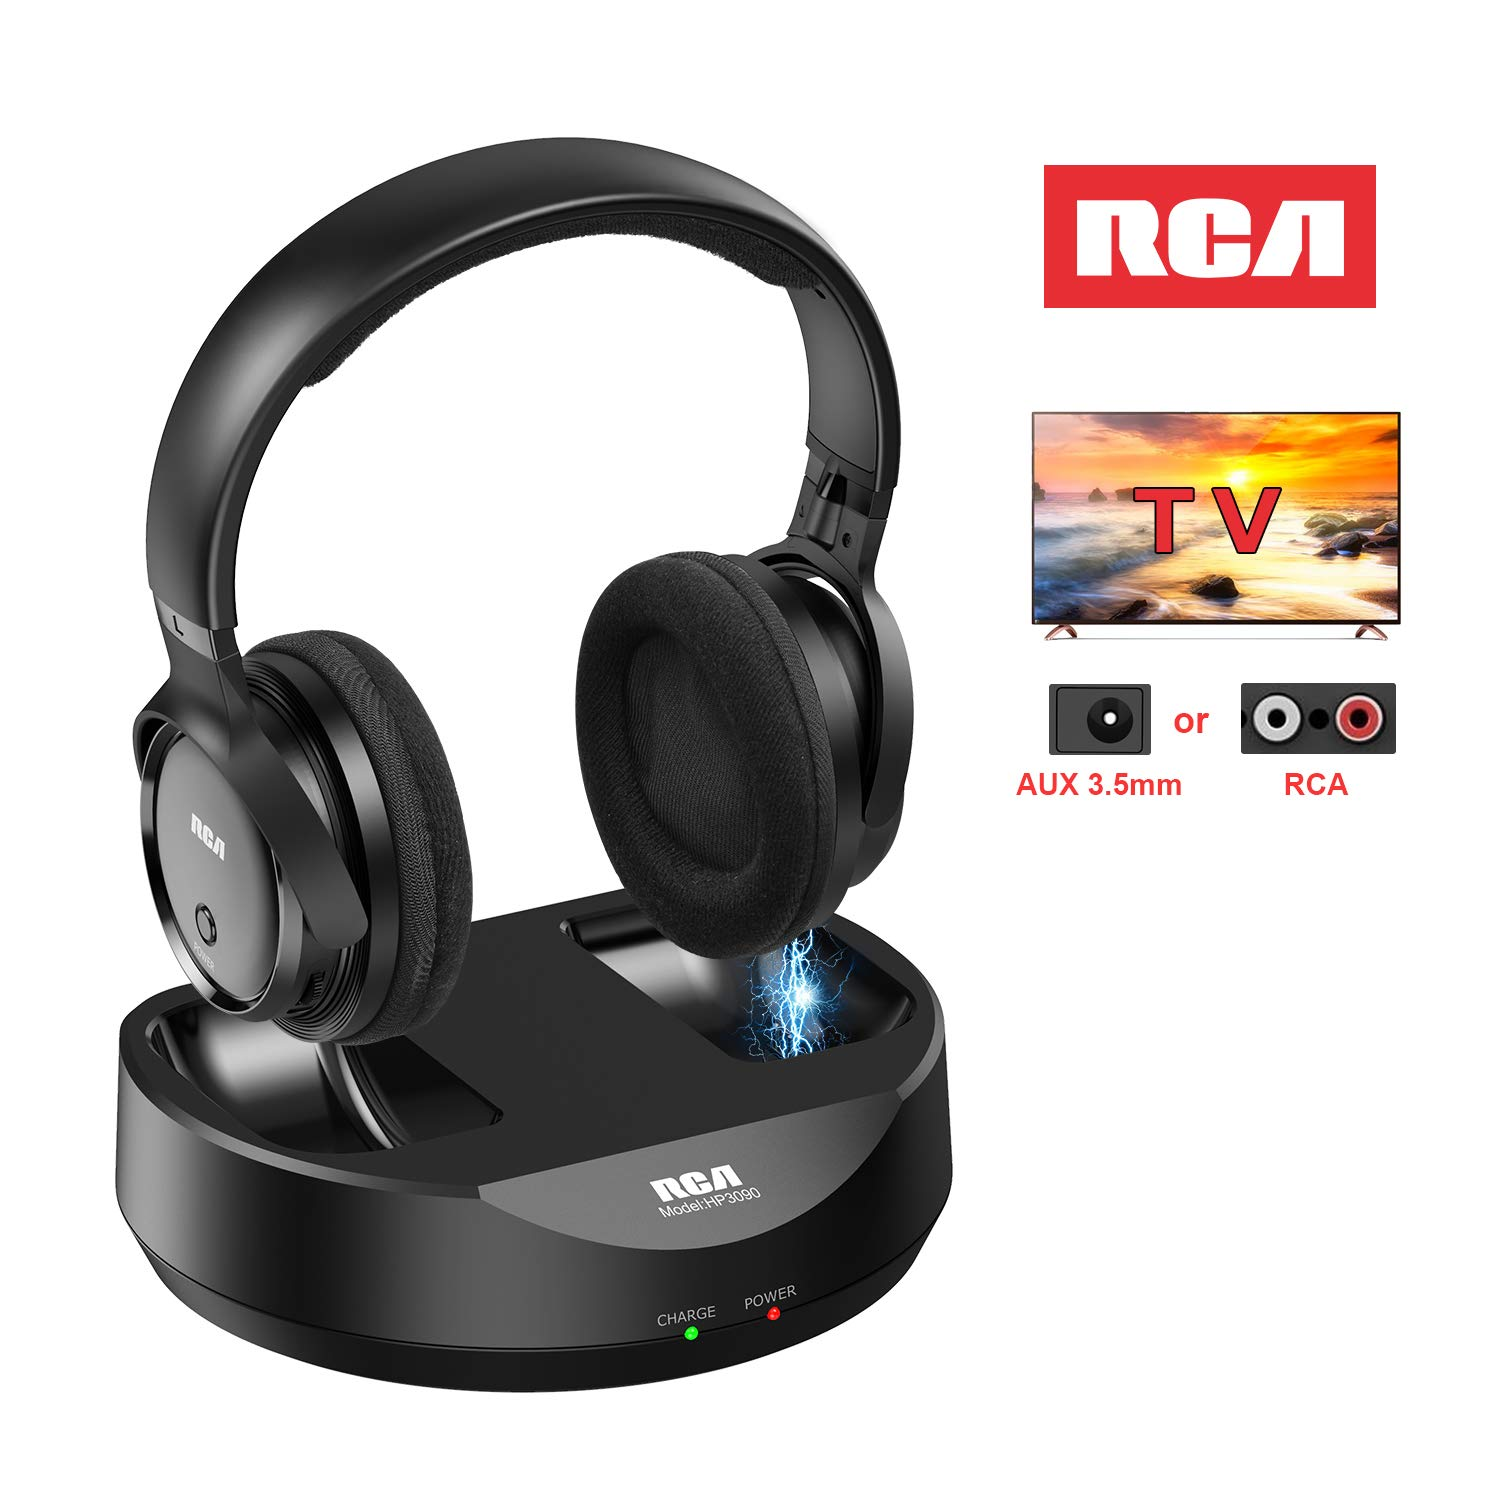 Amazon Com Rca Wireless Tv Headphones Over Ear Headphones For Tv Watching Pc Phone Mp3 Ipod Vcd Dvd Headphones For Seniors Hard Of Hearing 148ft 45m Range Rechargeable And Adjustable Electronics